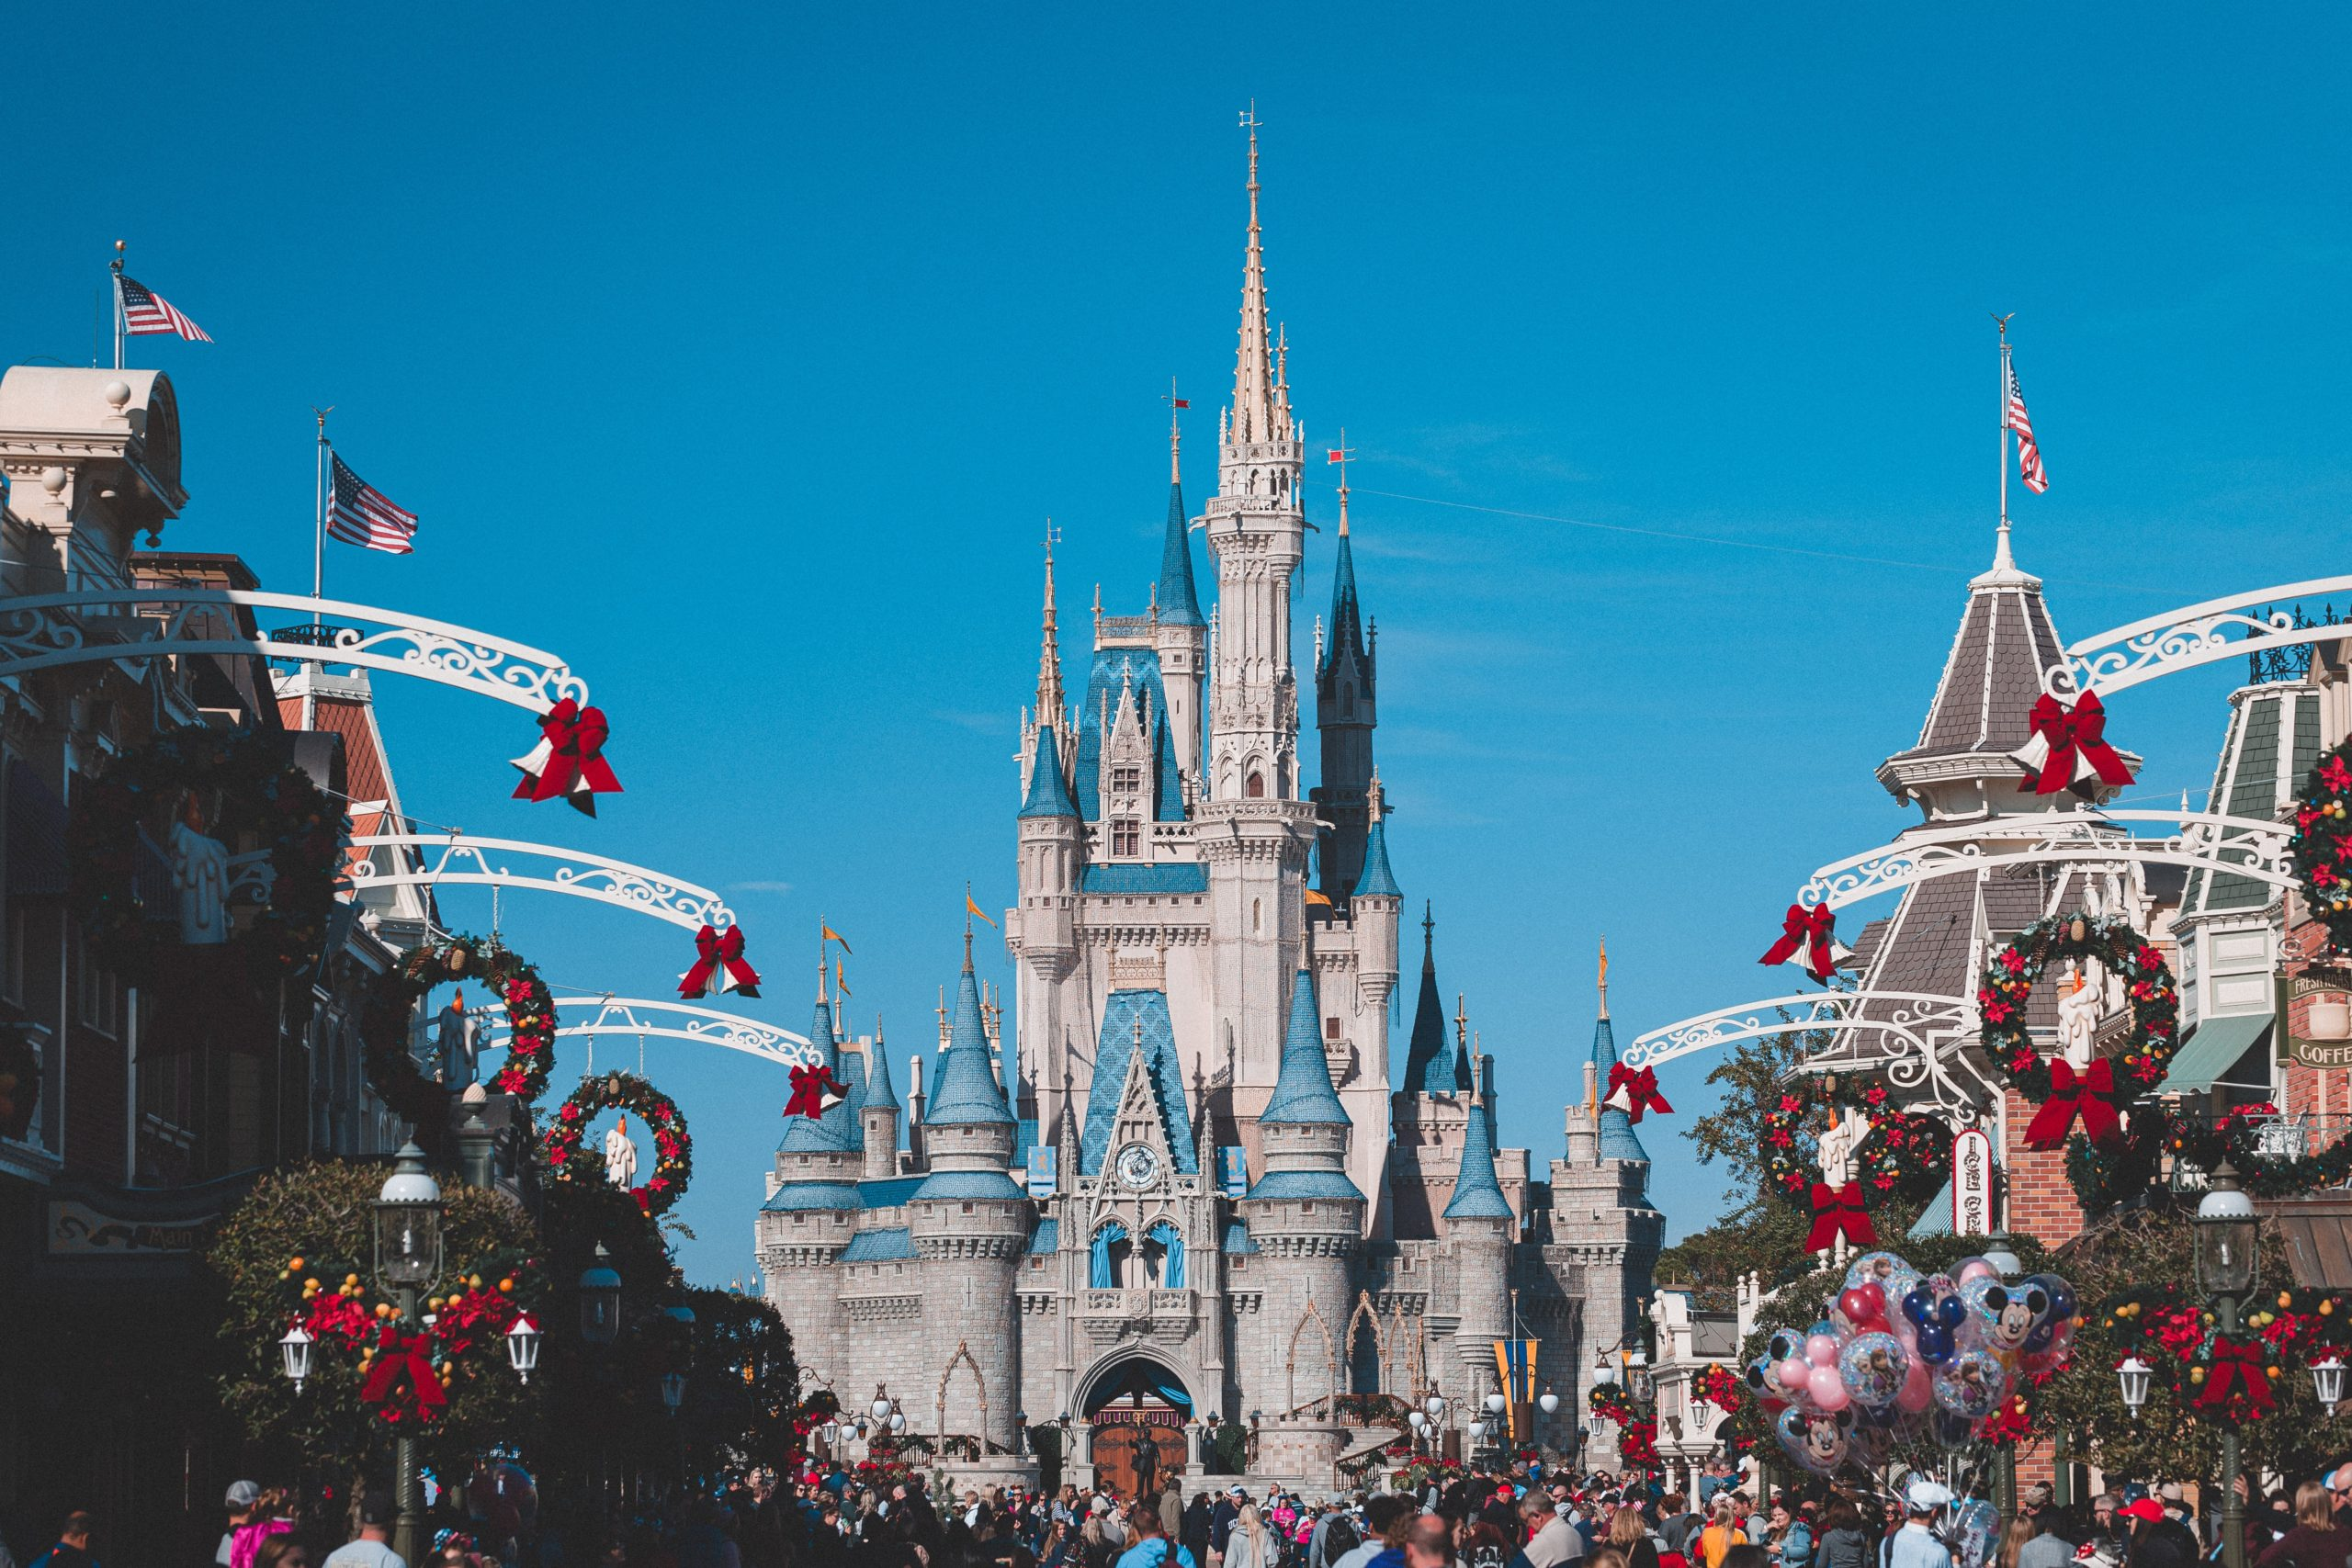 Two Major Events at Disney World Are Cancelled This Year